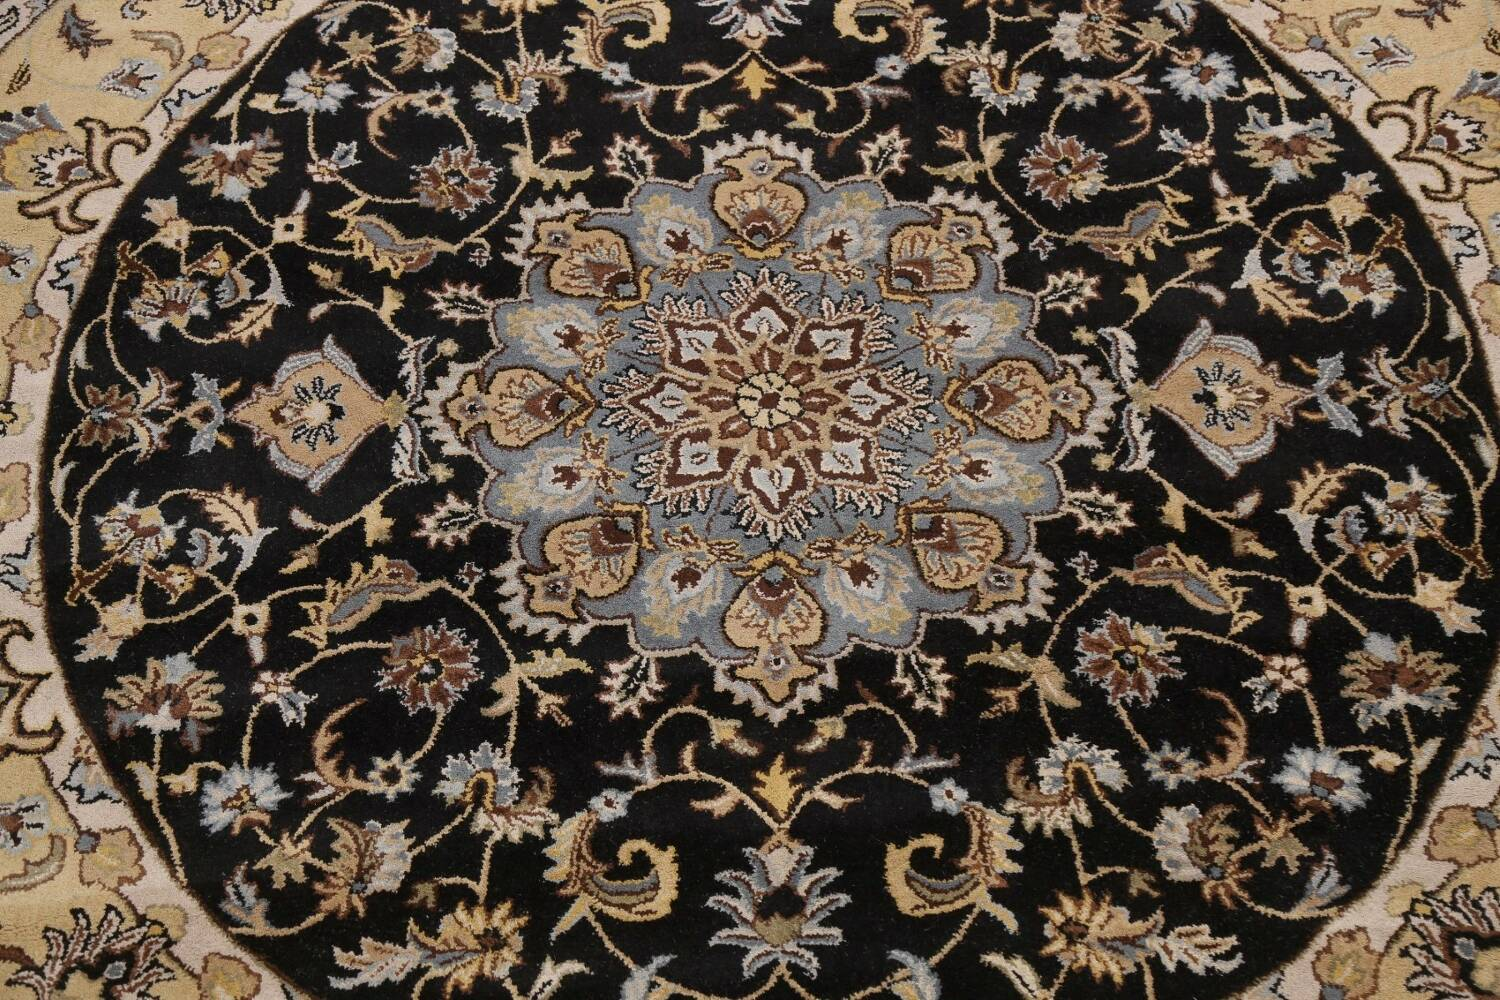 Floral Round Rug 10x10 image 3